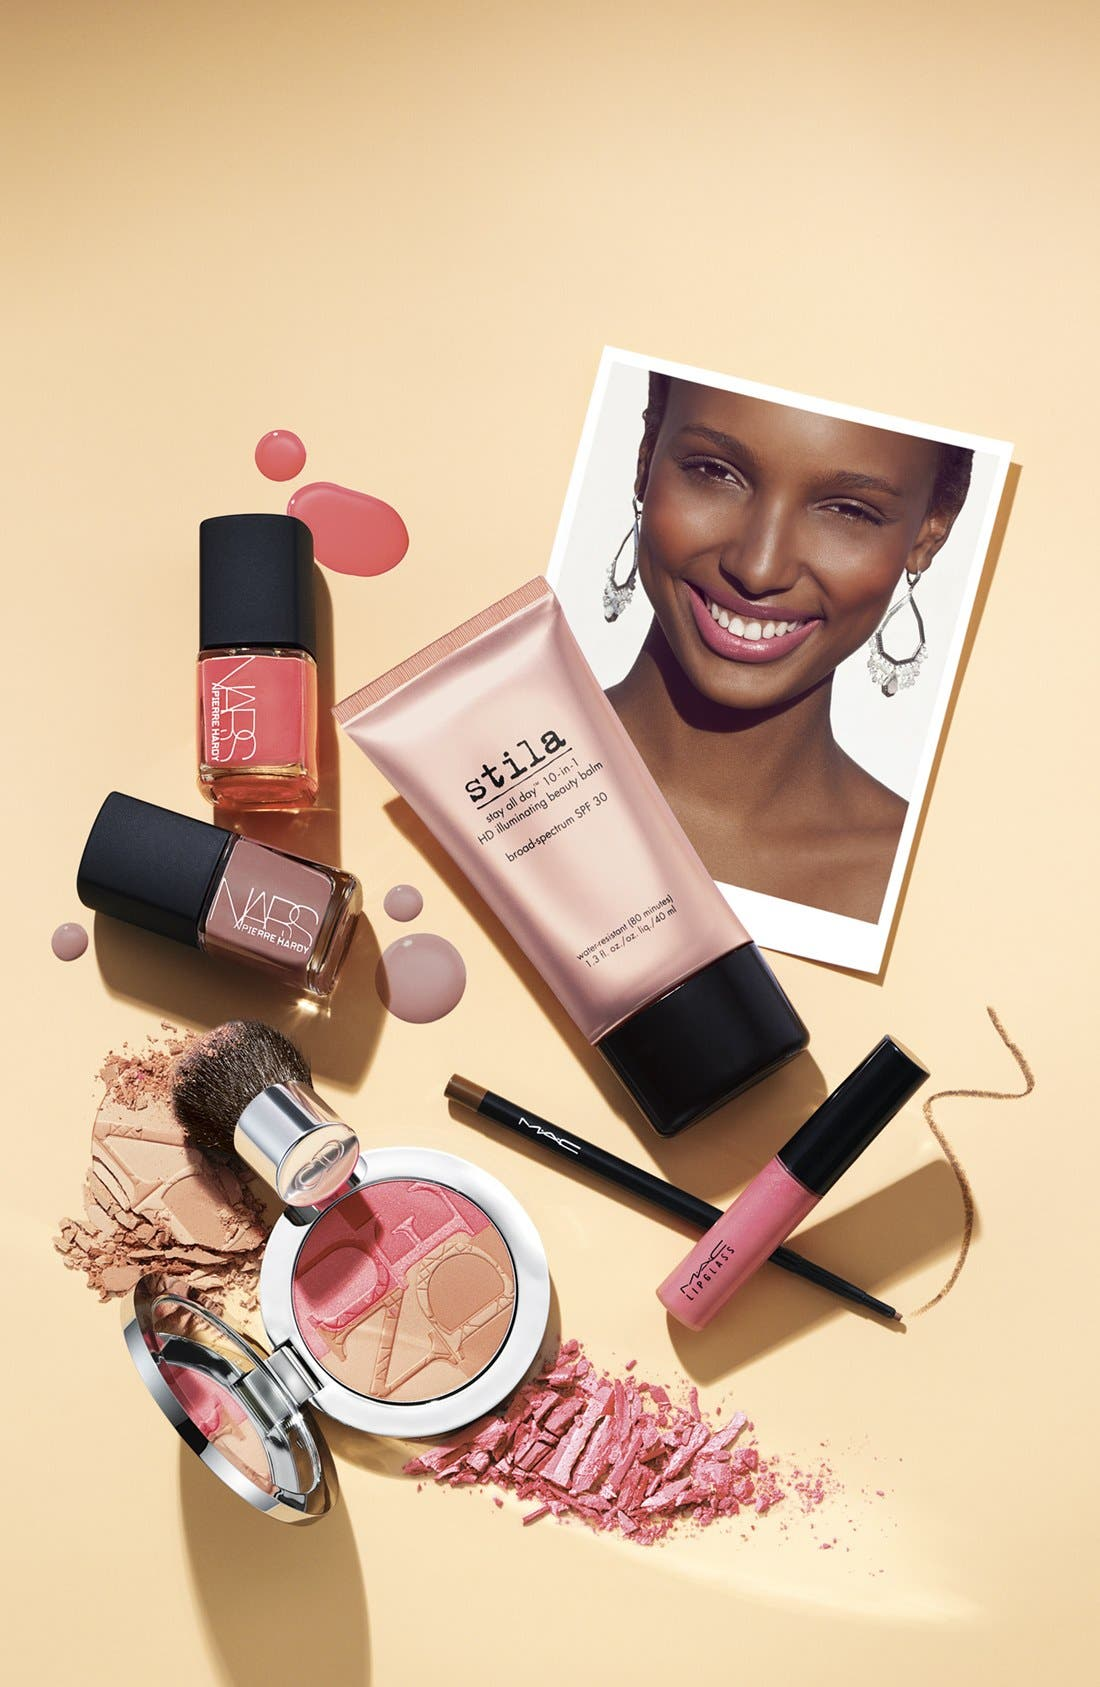 'stay all day' 10-in-1 HD illuminating beauty balm broad spectrum spf 30,                             Alternate thumbnail 2, color,                             NO COLOR